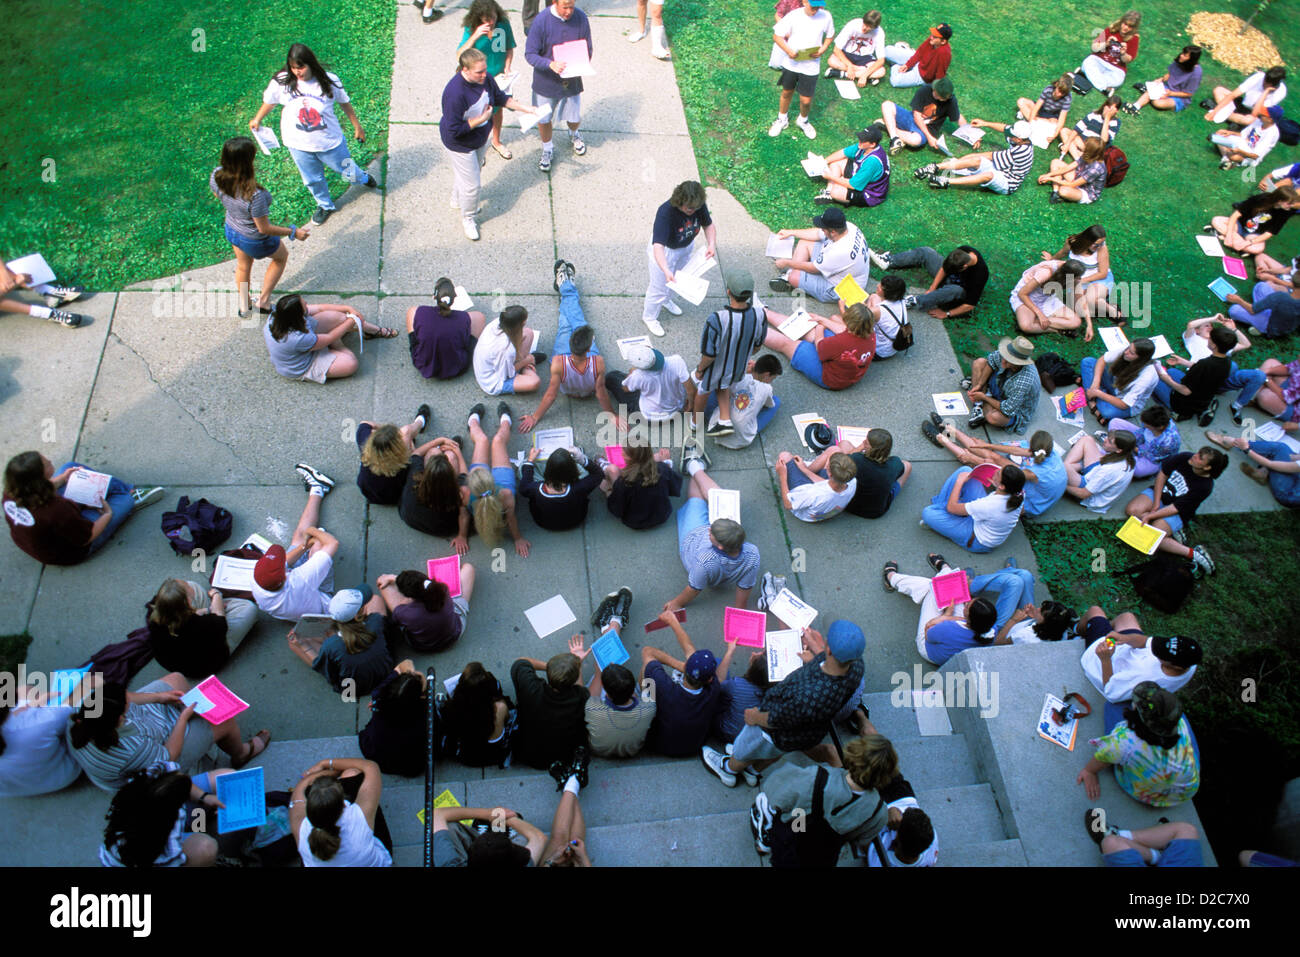 Students And Faculty Outdoors - Stock Image